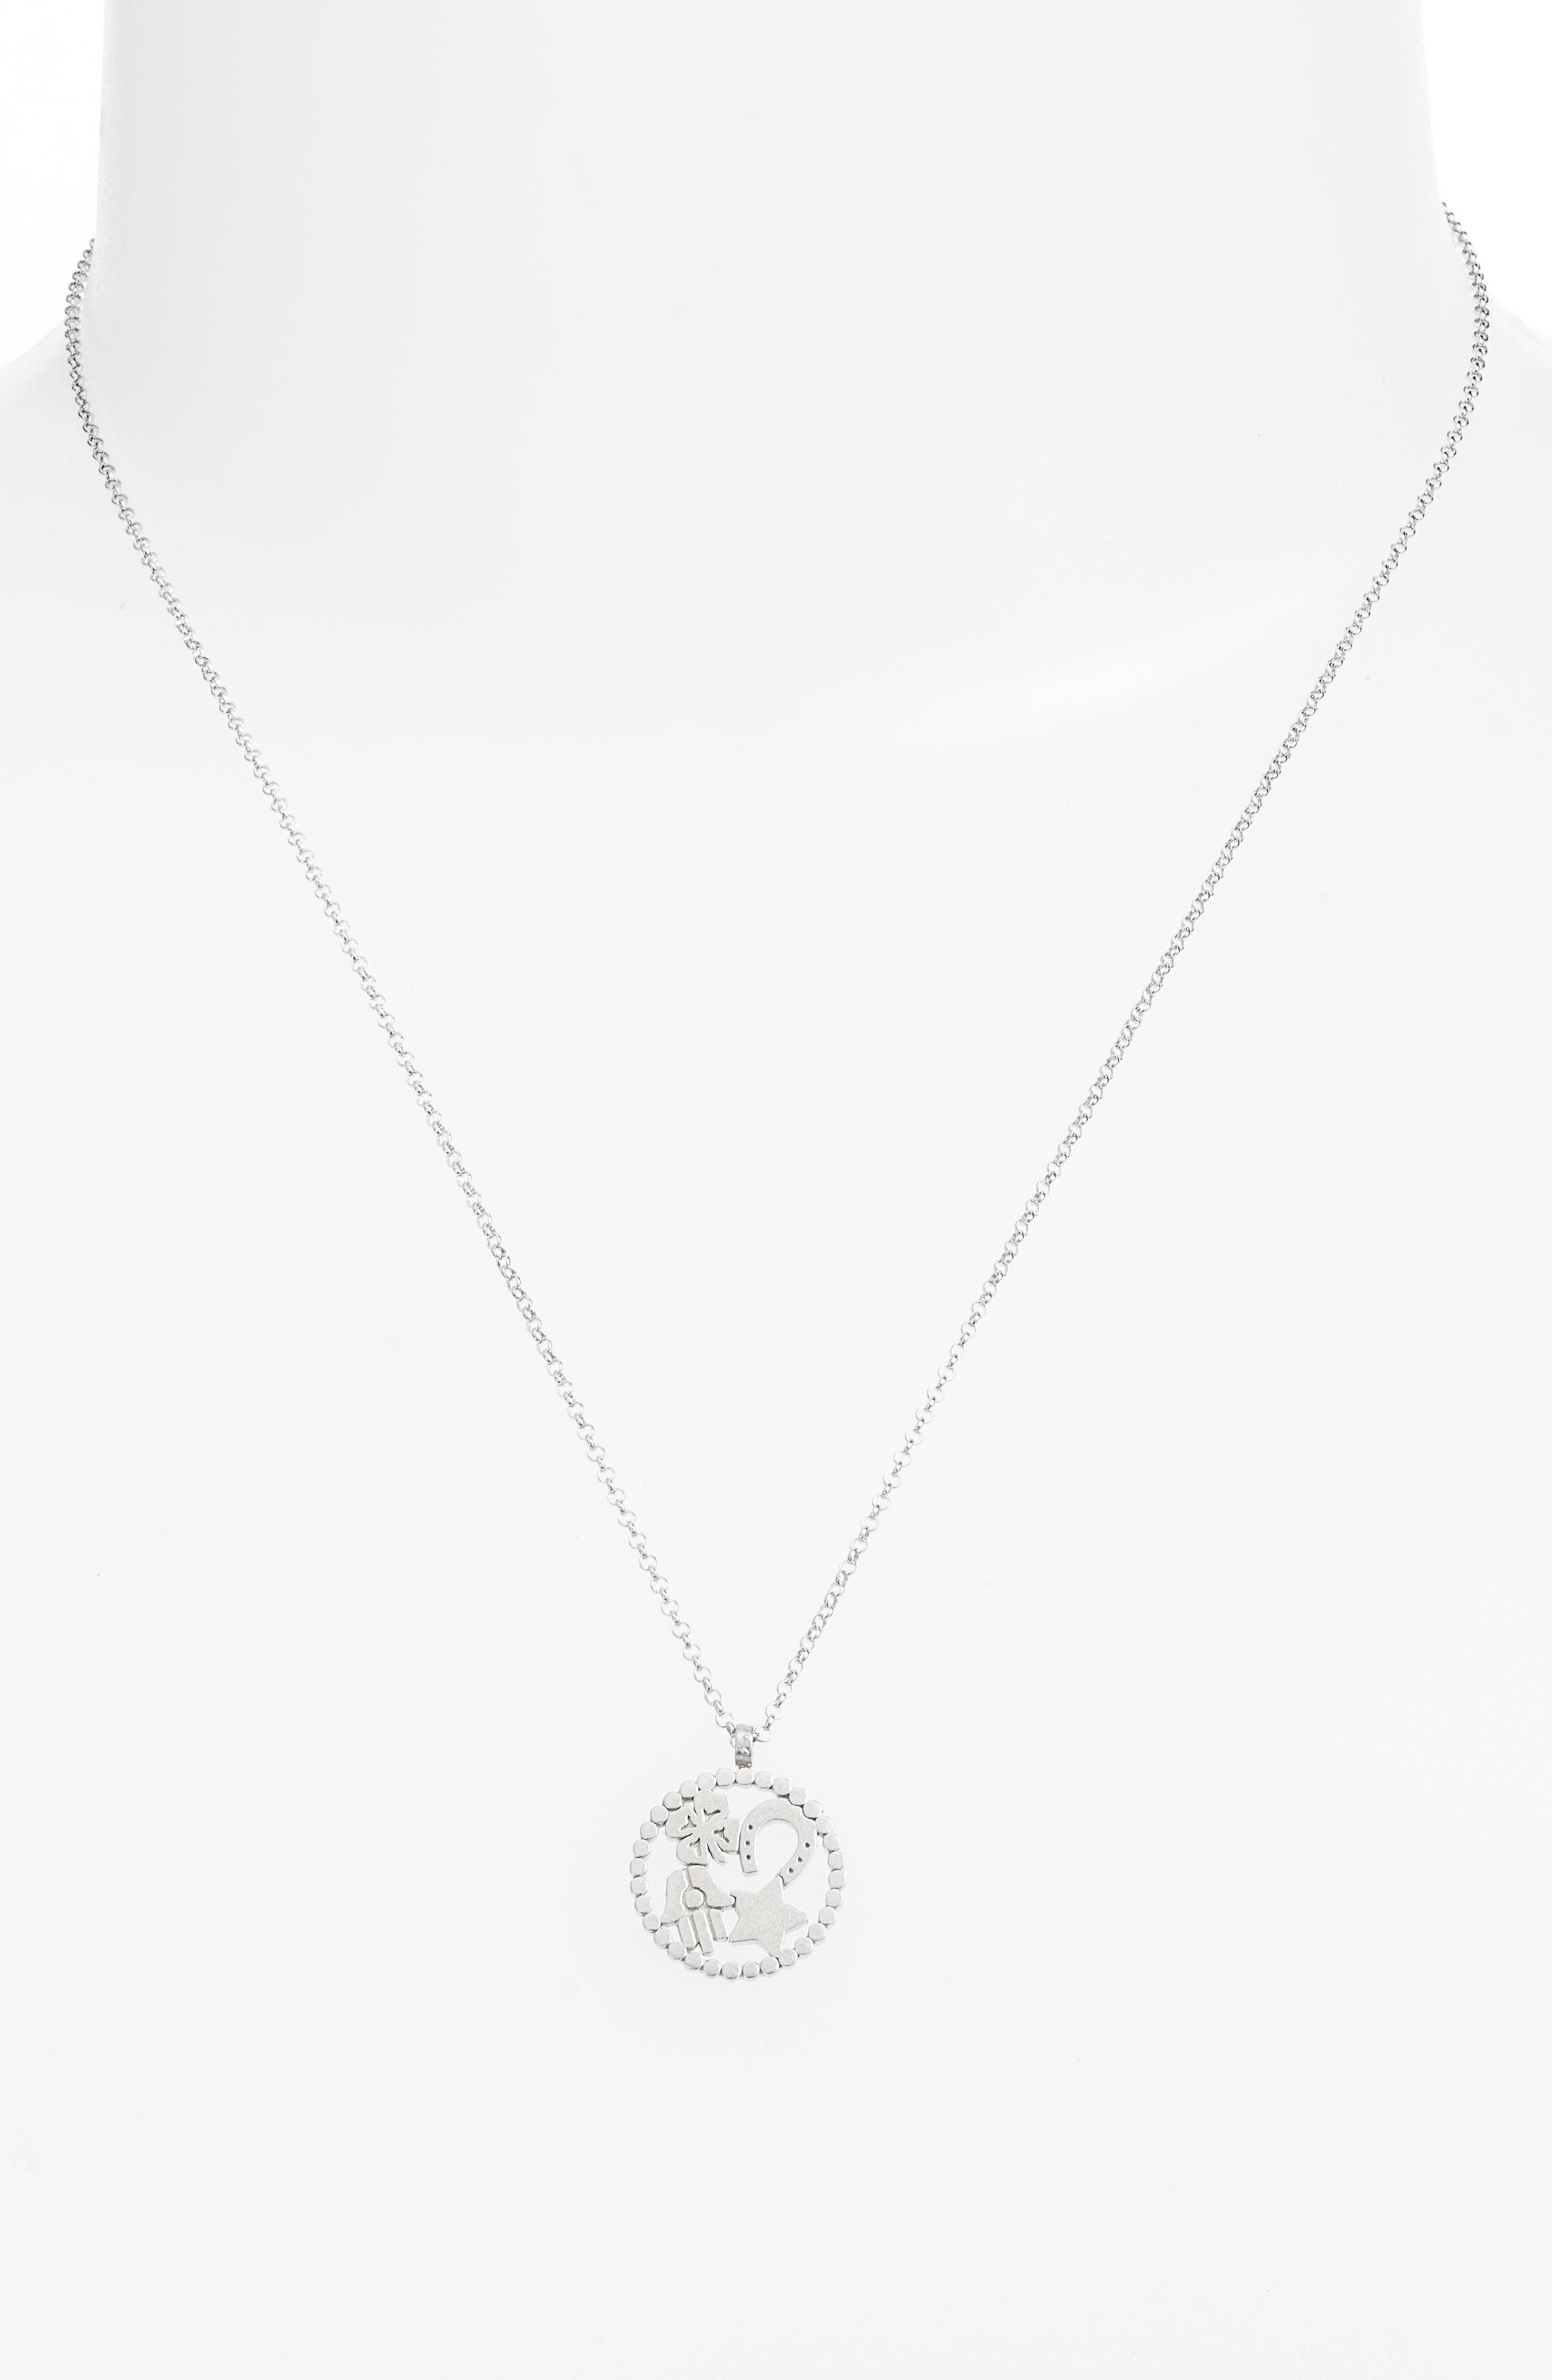 Dogeared Necklaces Charms Nordstrom Lighting Diagram Jewelry